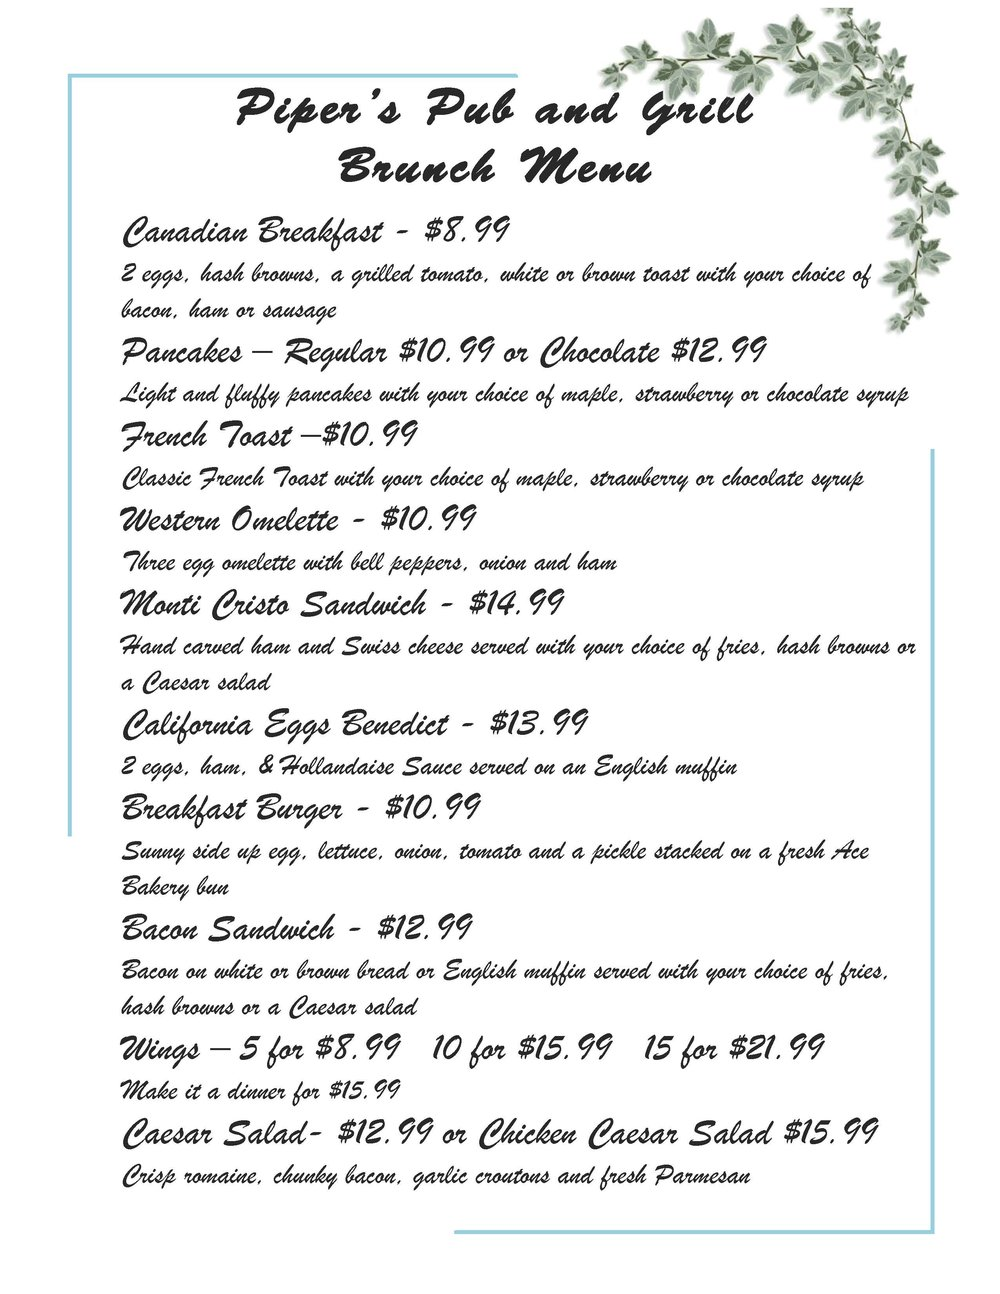 Brunch Menu - Feb 2018.jpg